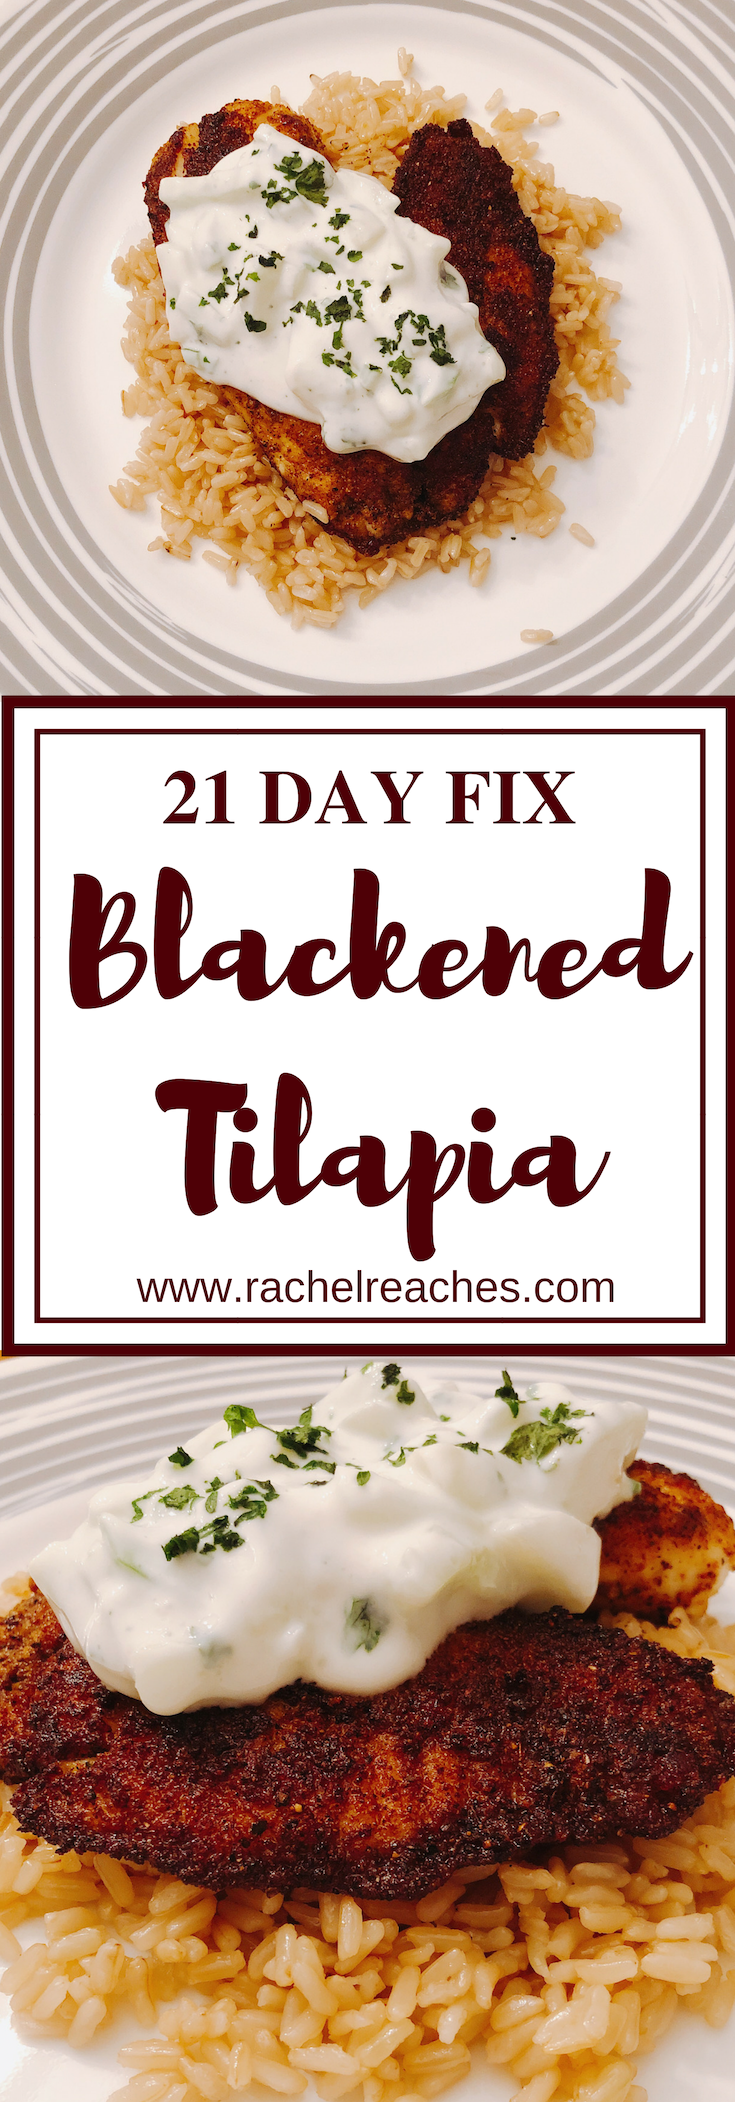 Blackened Tilapia Pin - 21 Day Fix.png